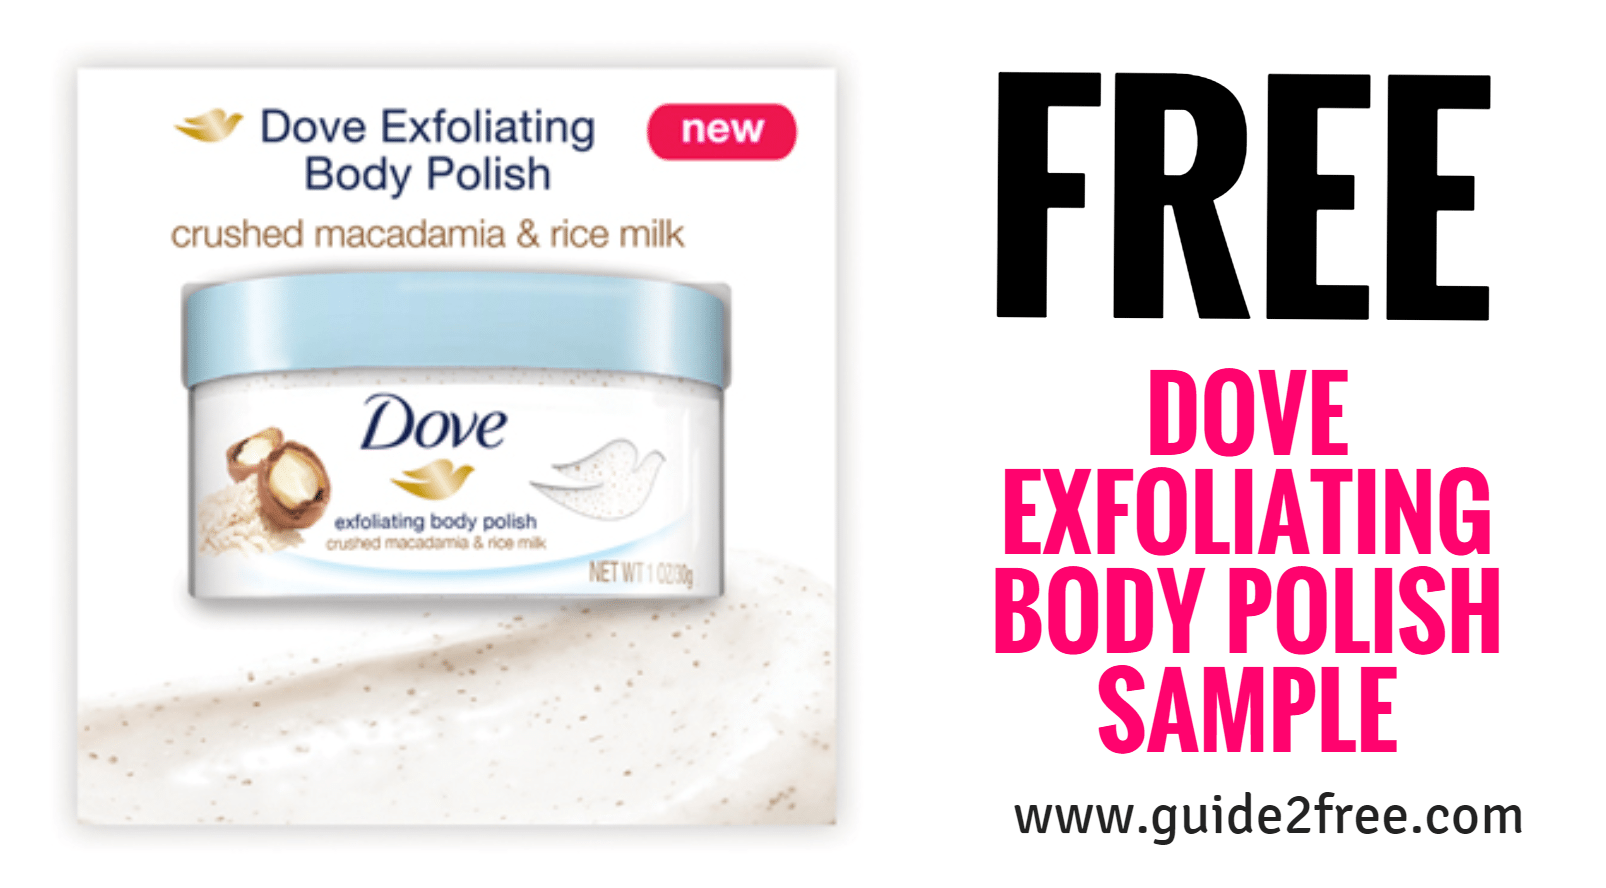 Free Dove Exfoliating Body Polish Sample Guide2free Samples